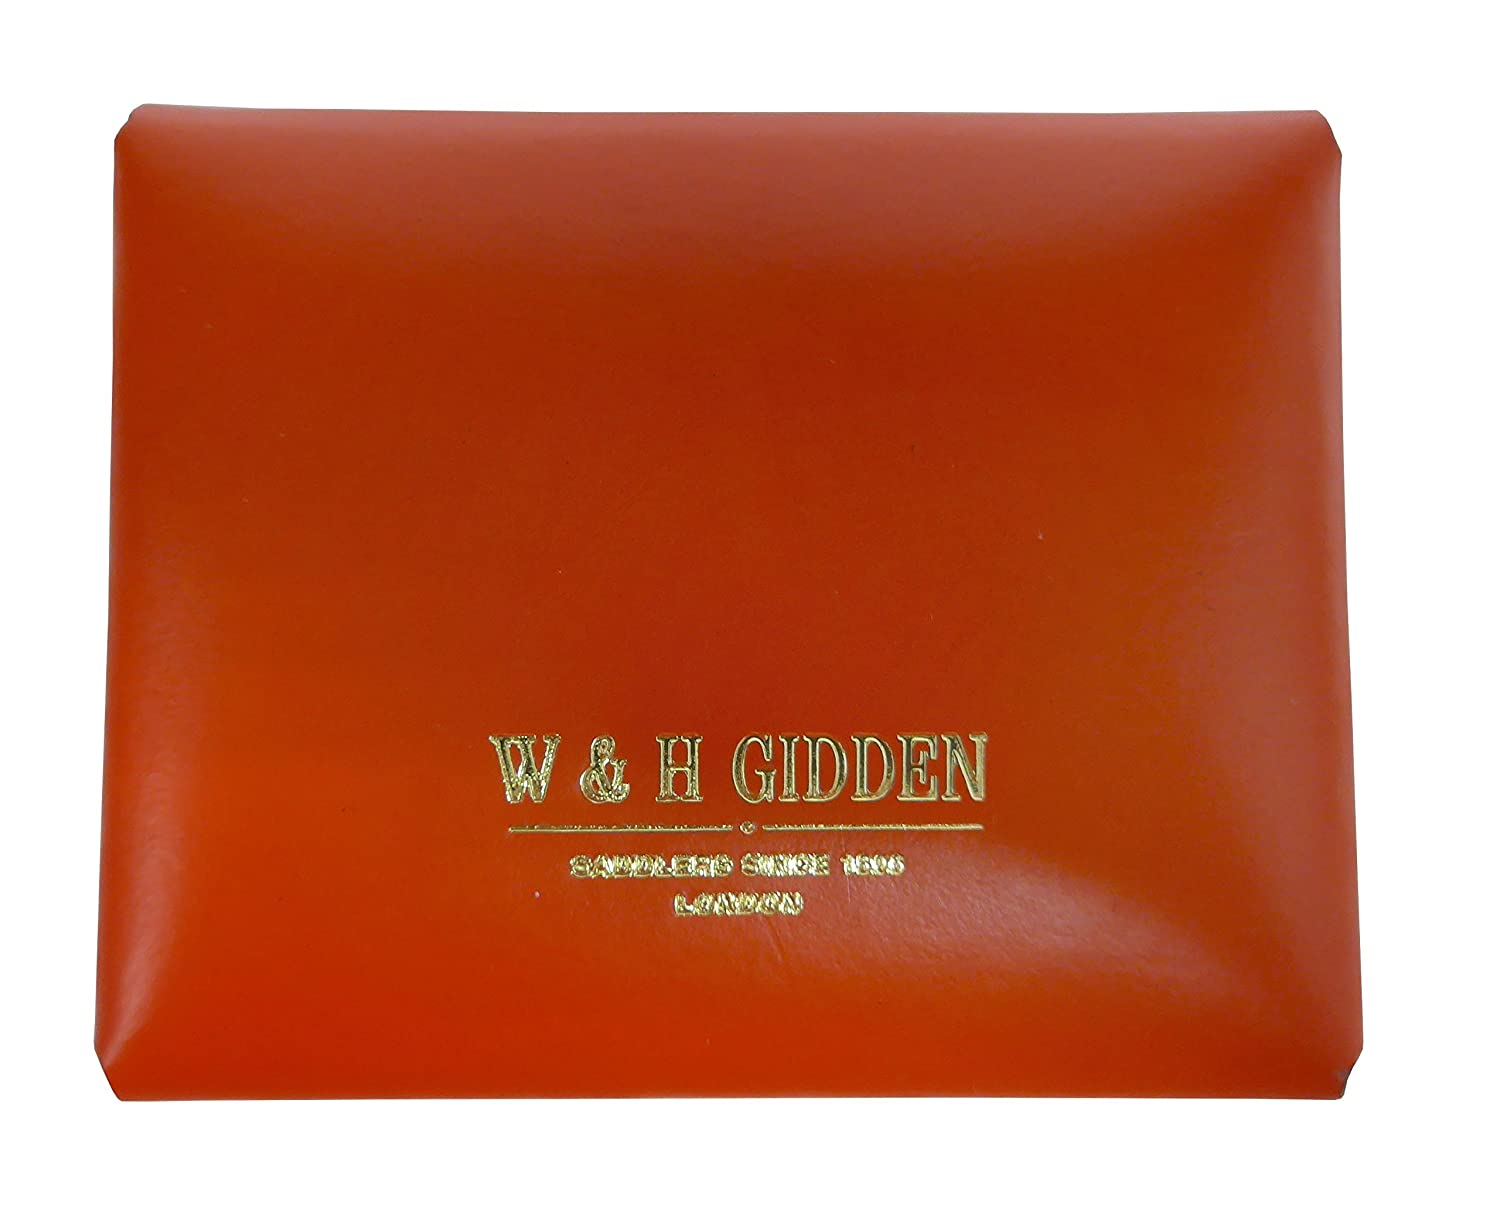 W /& H Gidden Mens Coin Case with Gidden Loop Closure